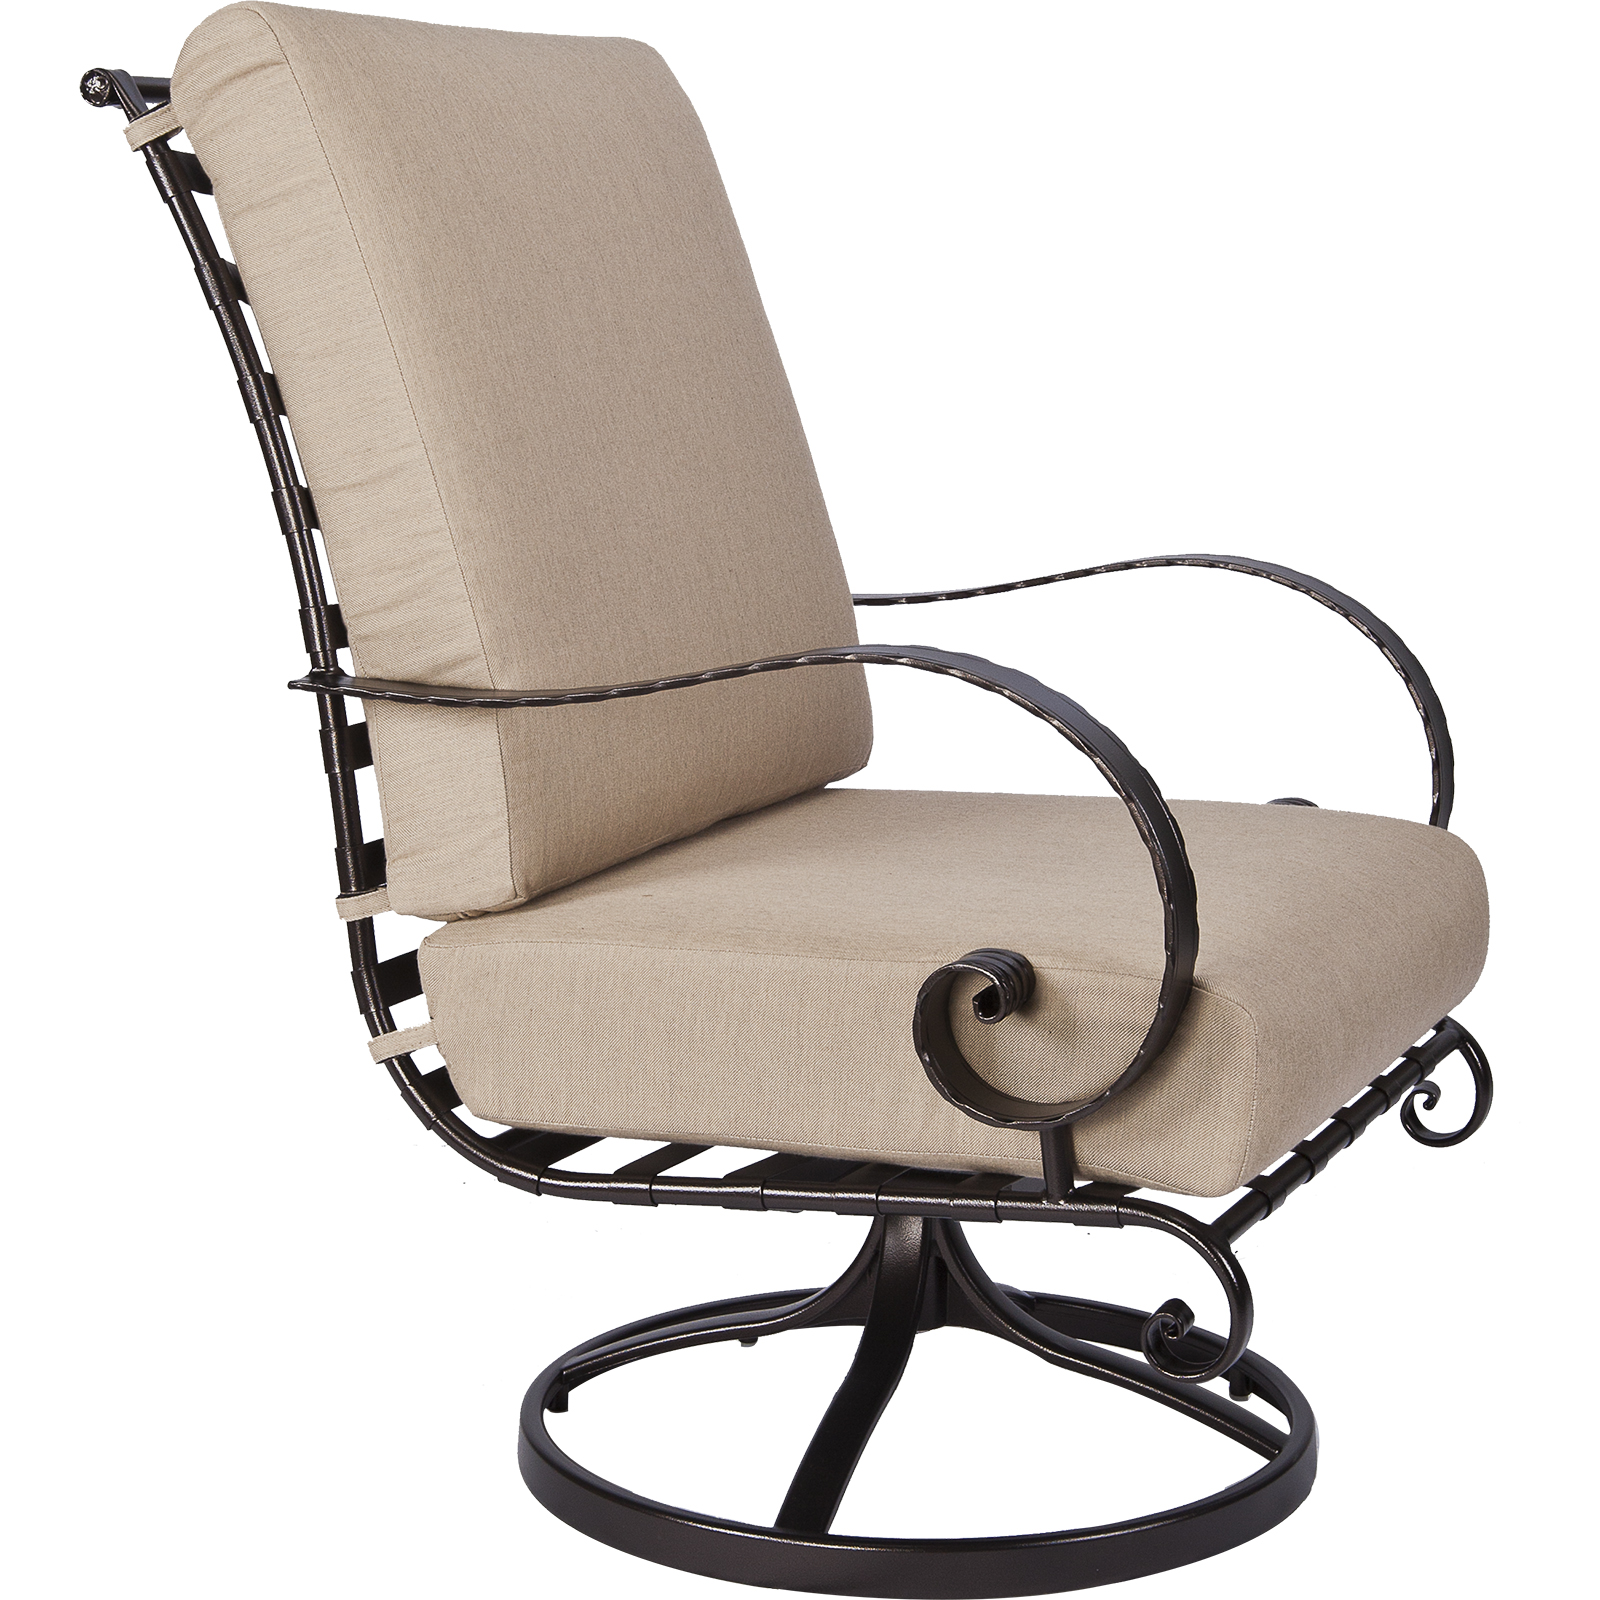 High-Back-Swivel-Rocker-Lounge-Chair-937-SRW_Catalog_GR35_1600-Classico-W-OW-Lee